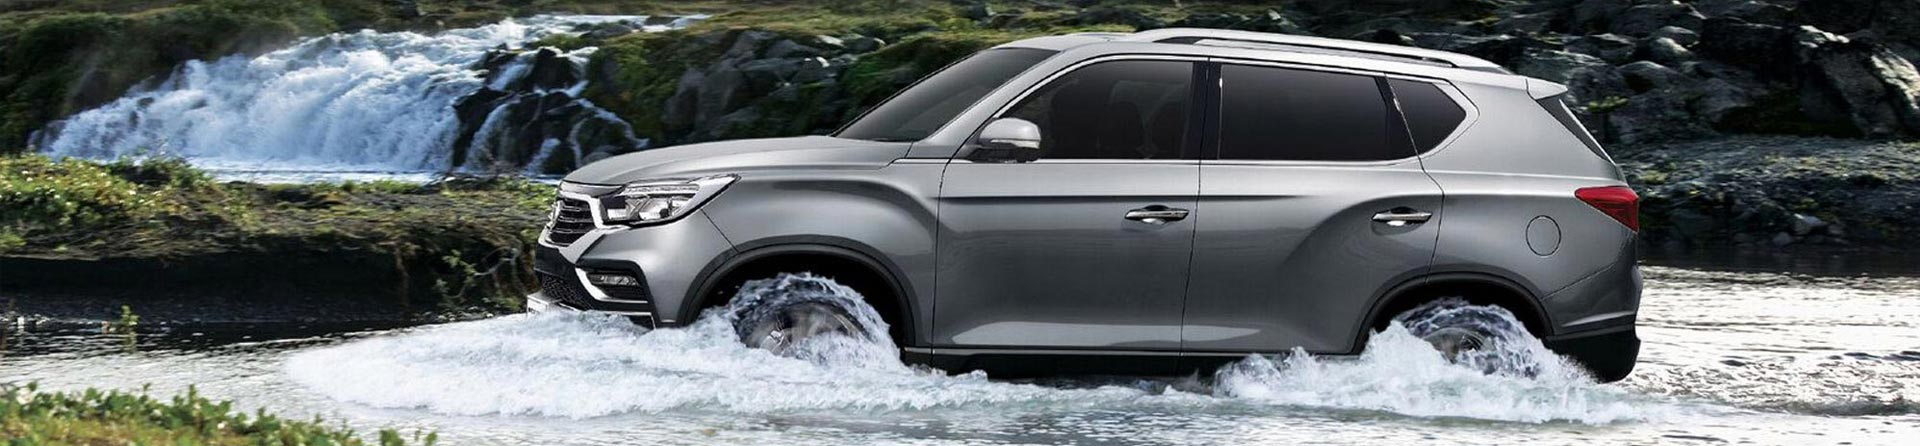 Ssangyong Rexton in a River